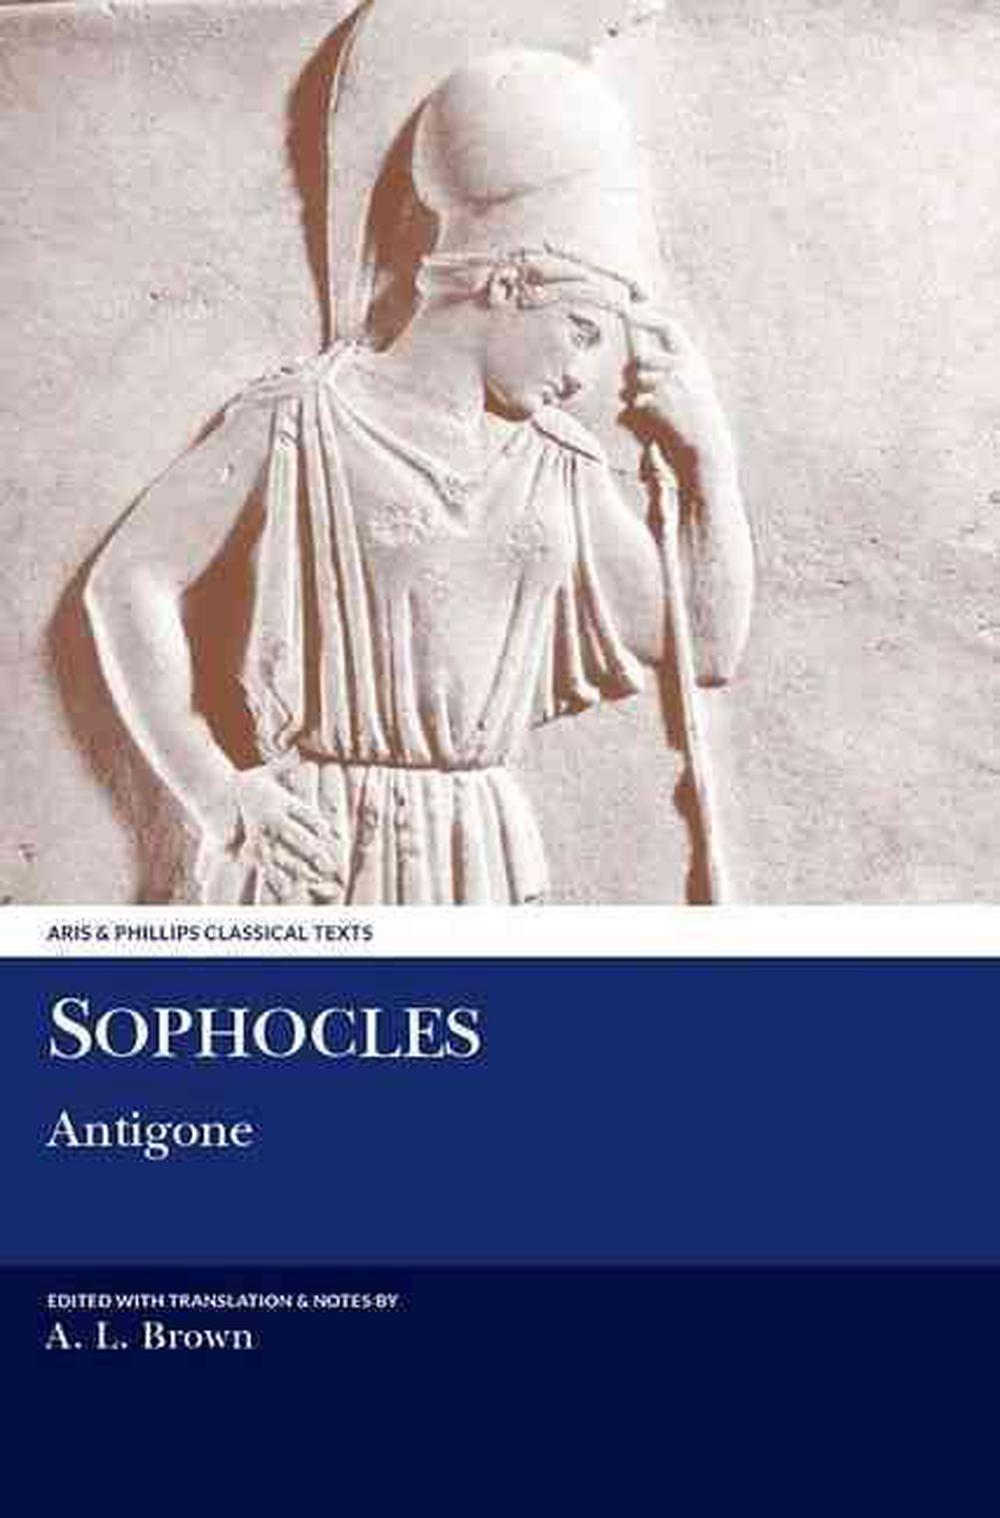 antigone paperback Antigone (paperback) by sophocles $699  usually ships in 1-5 days description this historic book may have numerous typos, missing text or index purchasers can download a free scanned copy of the original book (without typos) from the publisher 1906 not illustrated.